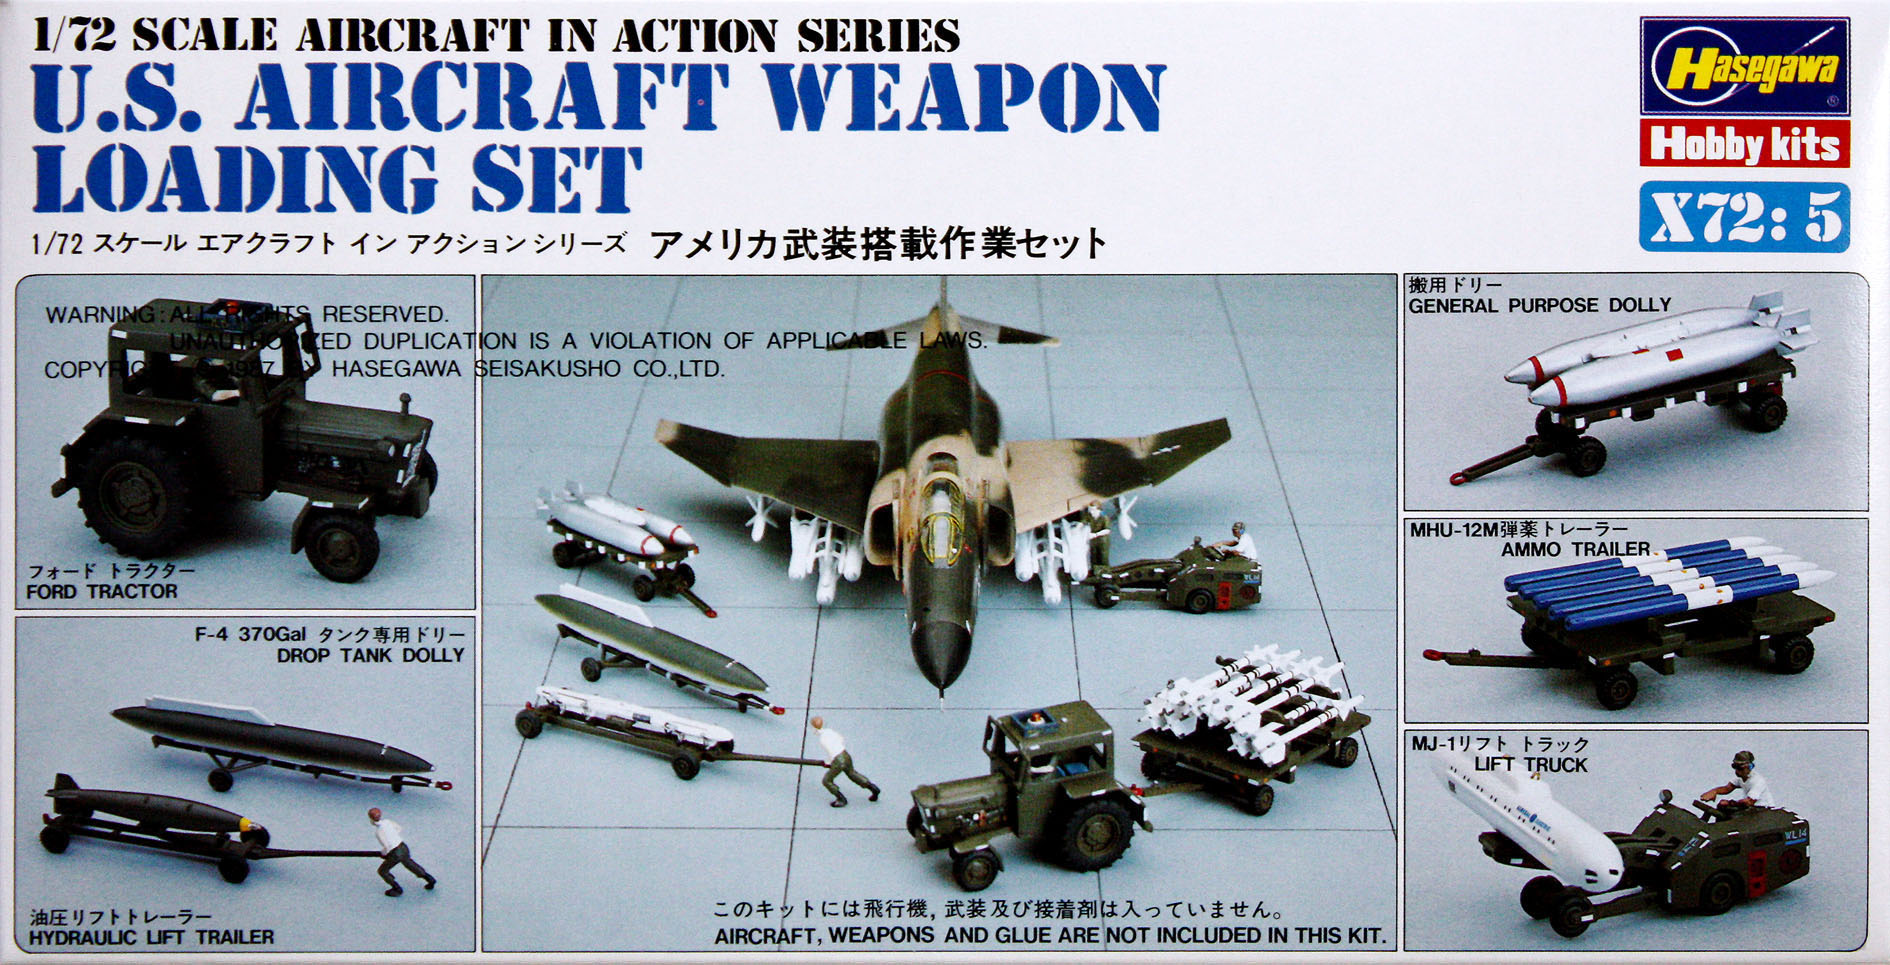 U.S. AIRCRAFT WEAPON LOADING SET